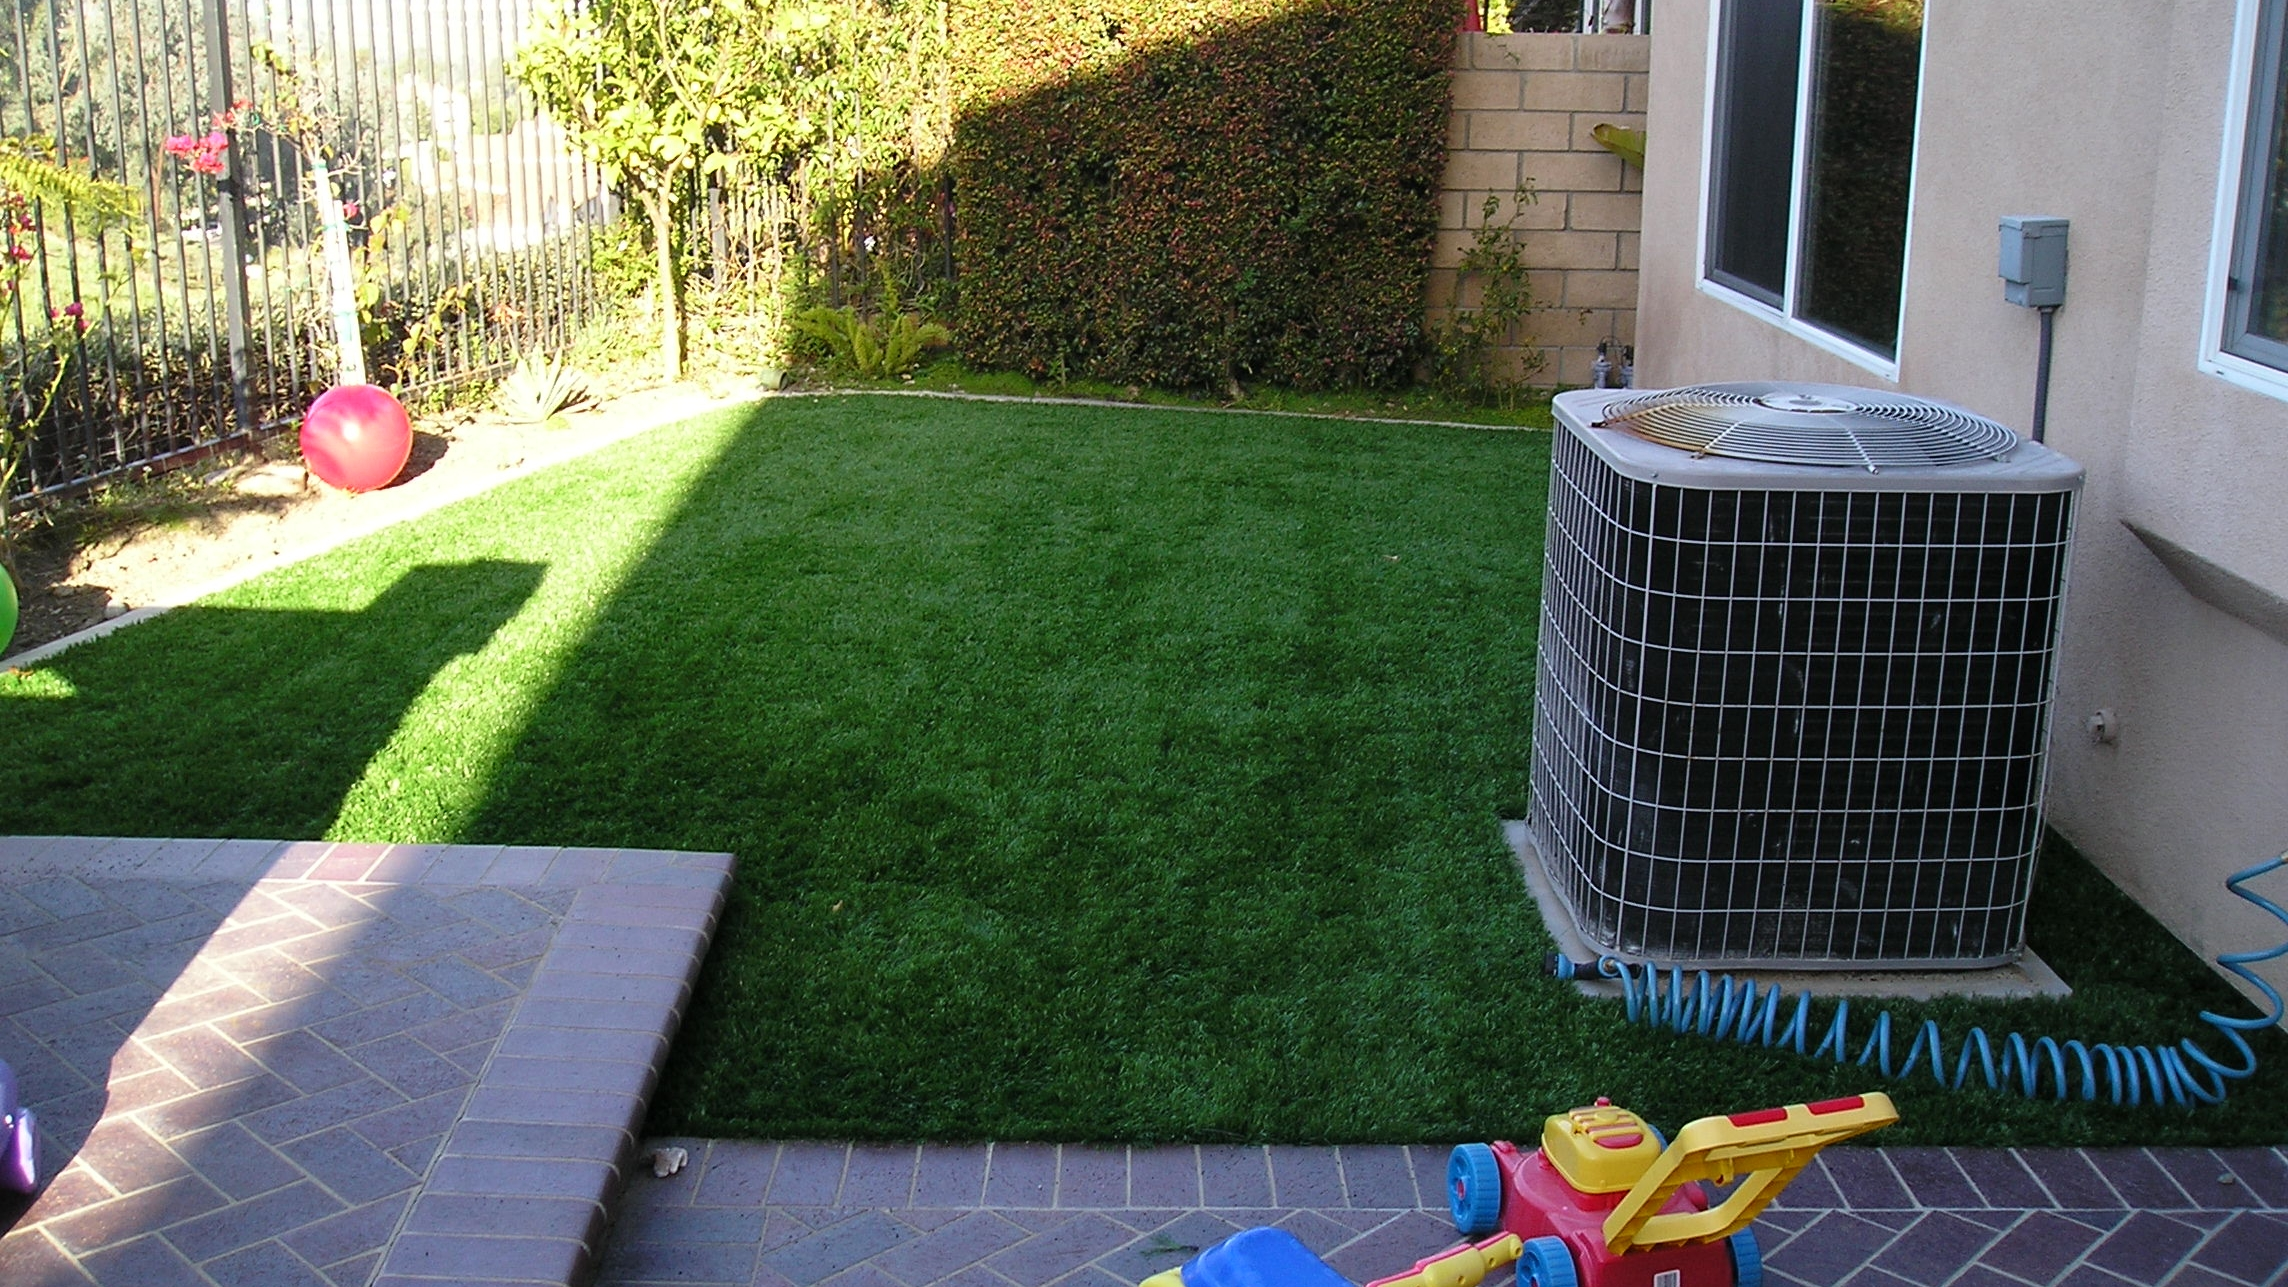 Premium M Blade-60 backyard turf,turf backyard,fake grass for backyard,fake grass backyard,artificial grass backyard,artificial turf,synthetic turf,artificial turf installation,how to install artificial turf,used artificial turf,fake grass for yard,backyard turf,turf backyard,turf yard,fake grass for backyard,fake grass for yard,backyard turf,turf backyard,turf yard,fake grass for backyard